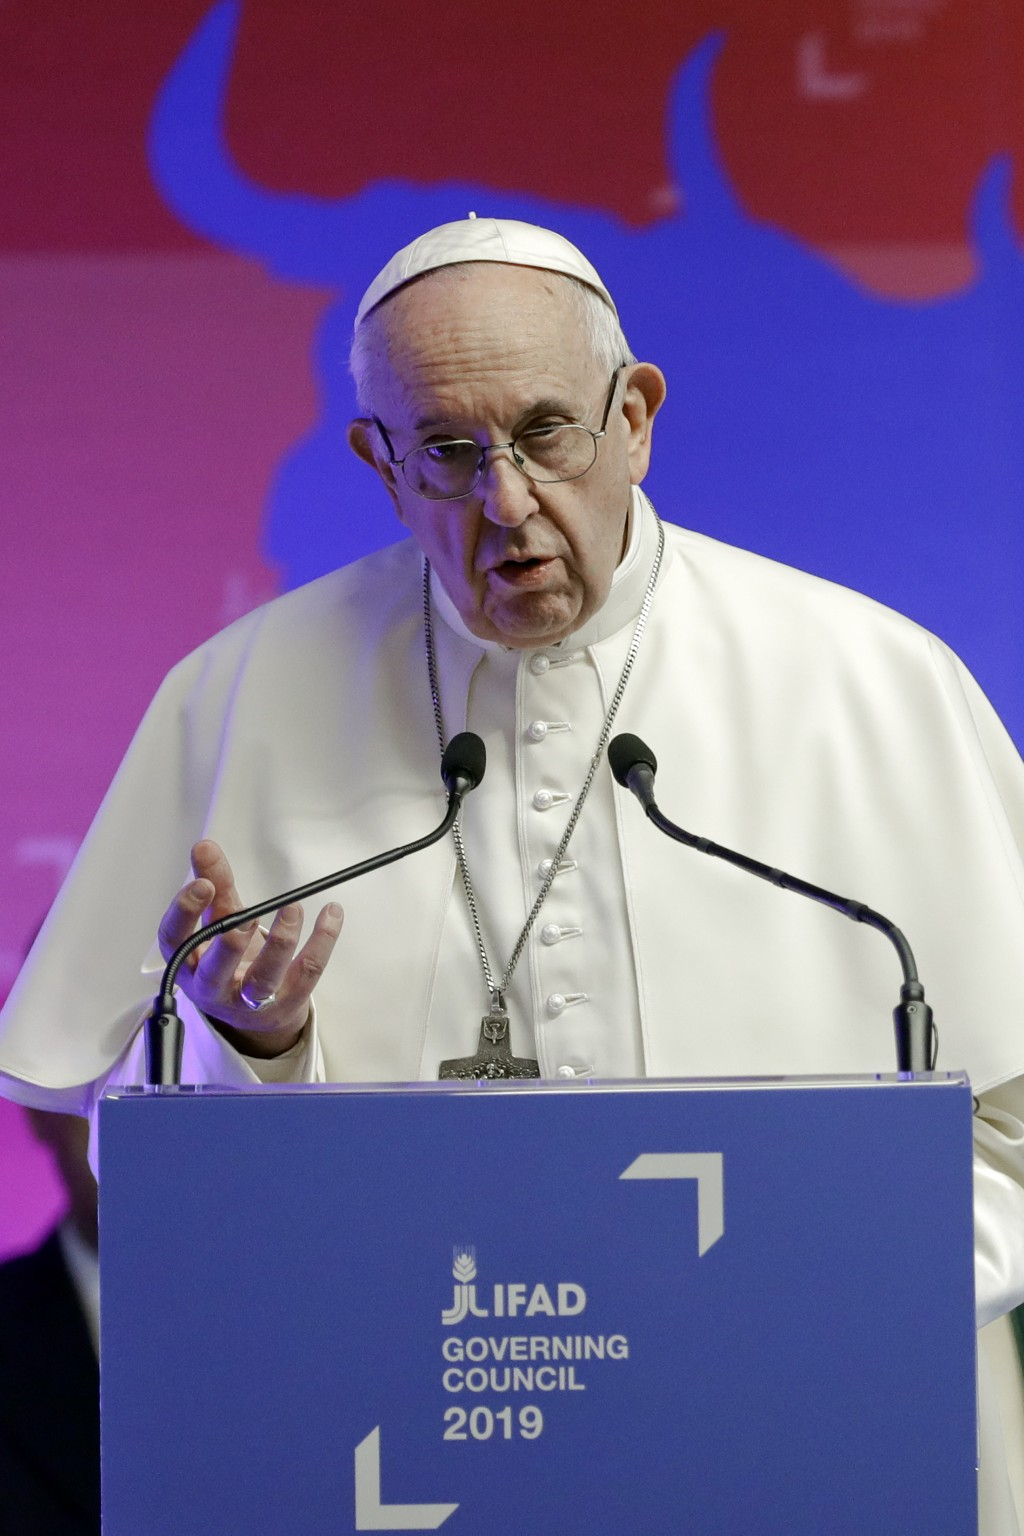 Pope Francis addresses the Governing Council of the International Fund for Agricultural Development (IFAD), a United Nations agency, in Rome, Thursday